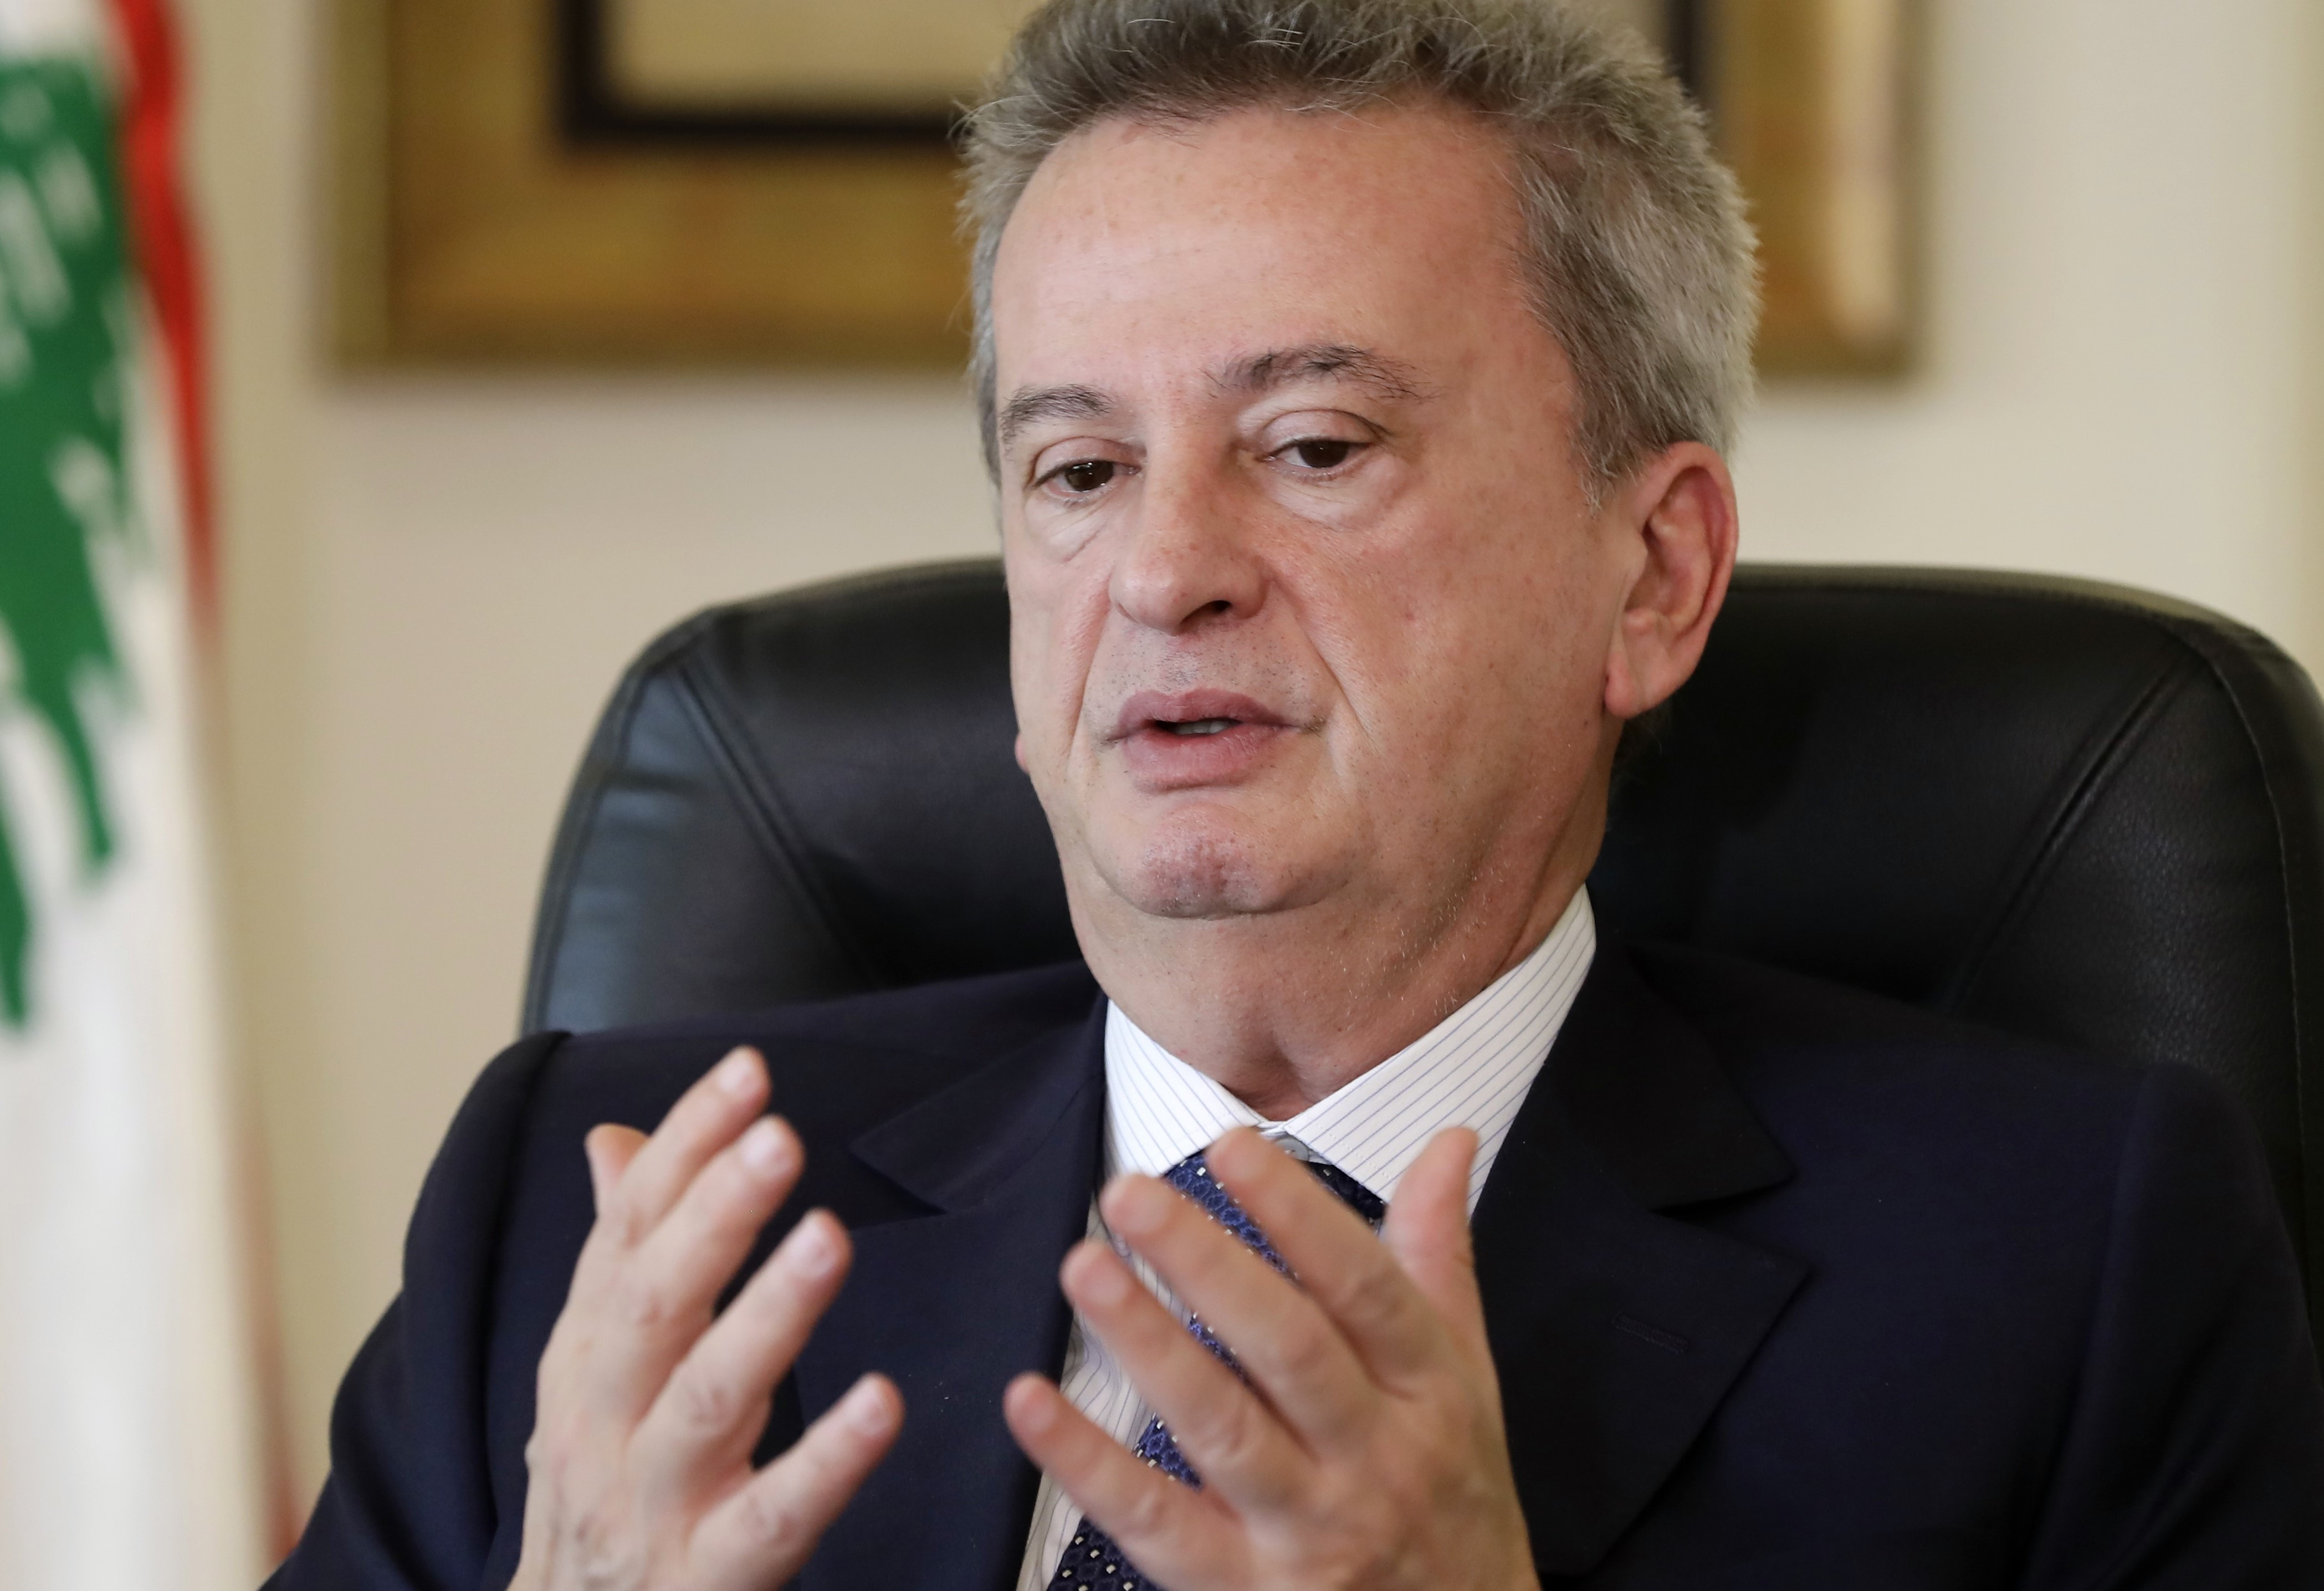 Lebanon's Central Bank Governor Riad Salameh at his office in Beirut on 15 December, 2017 (AFP)